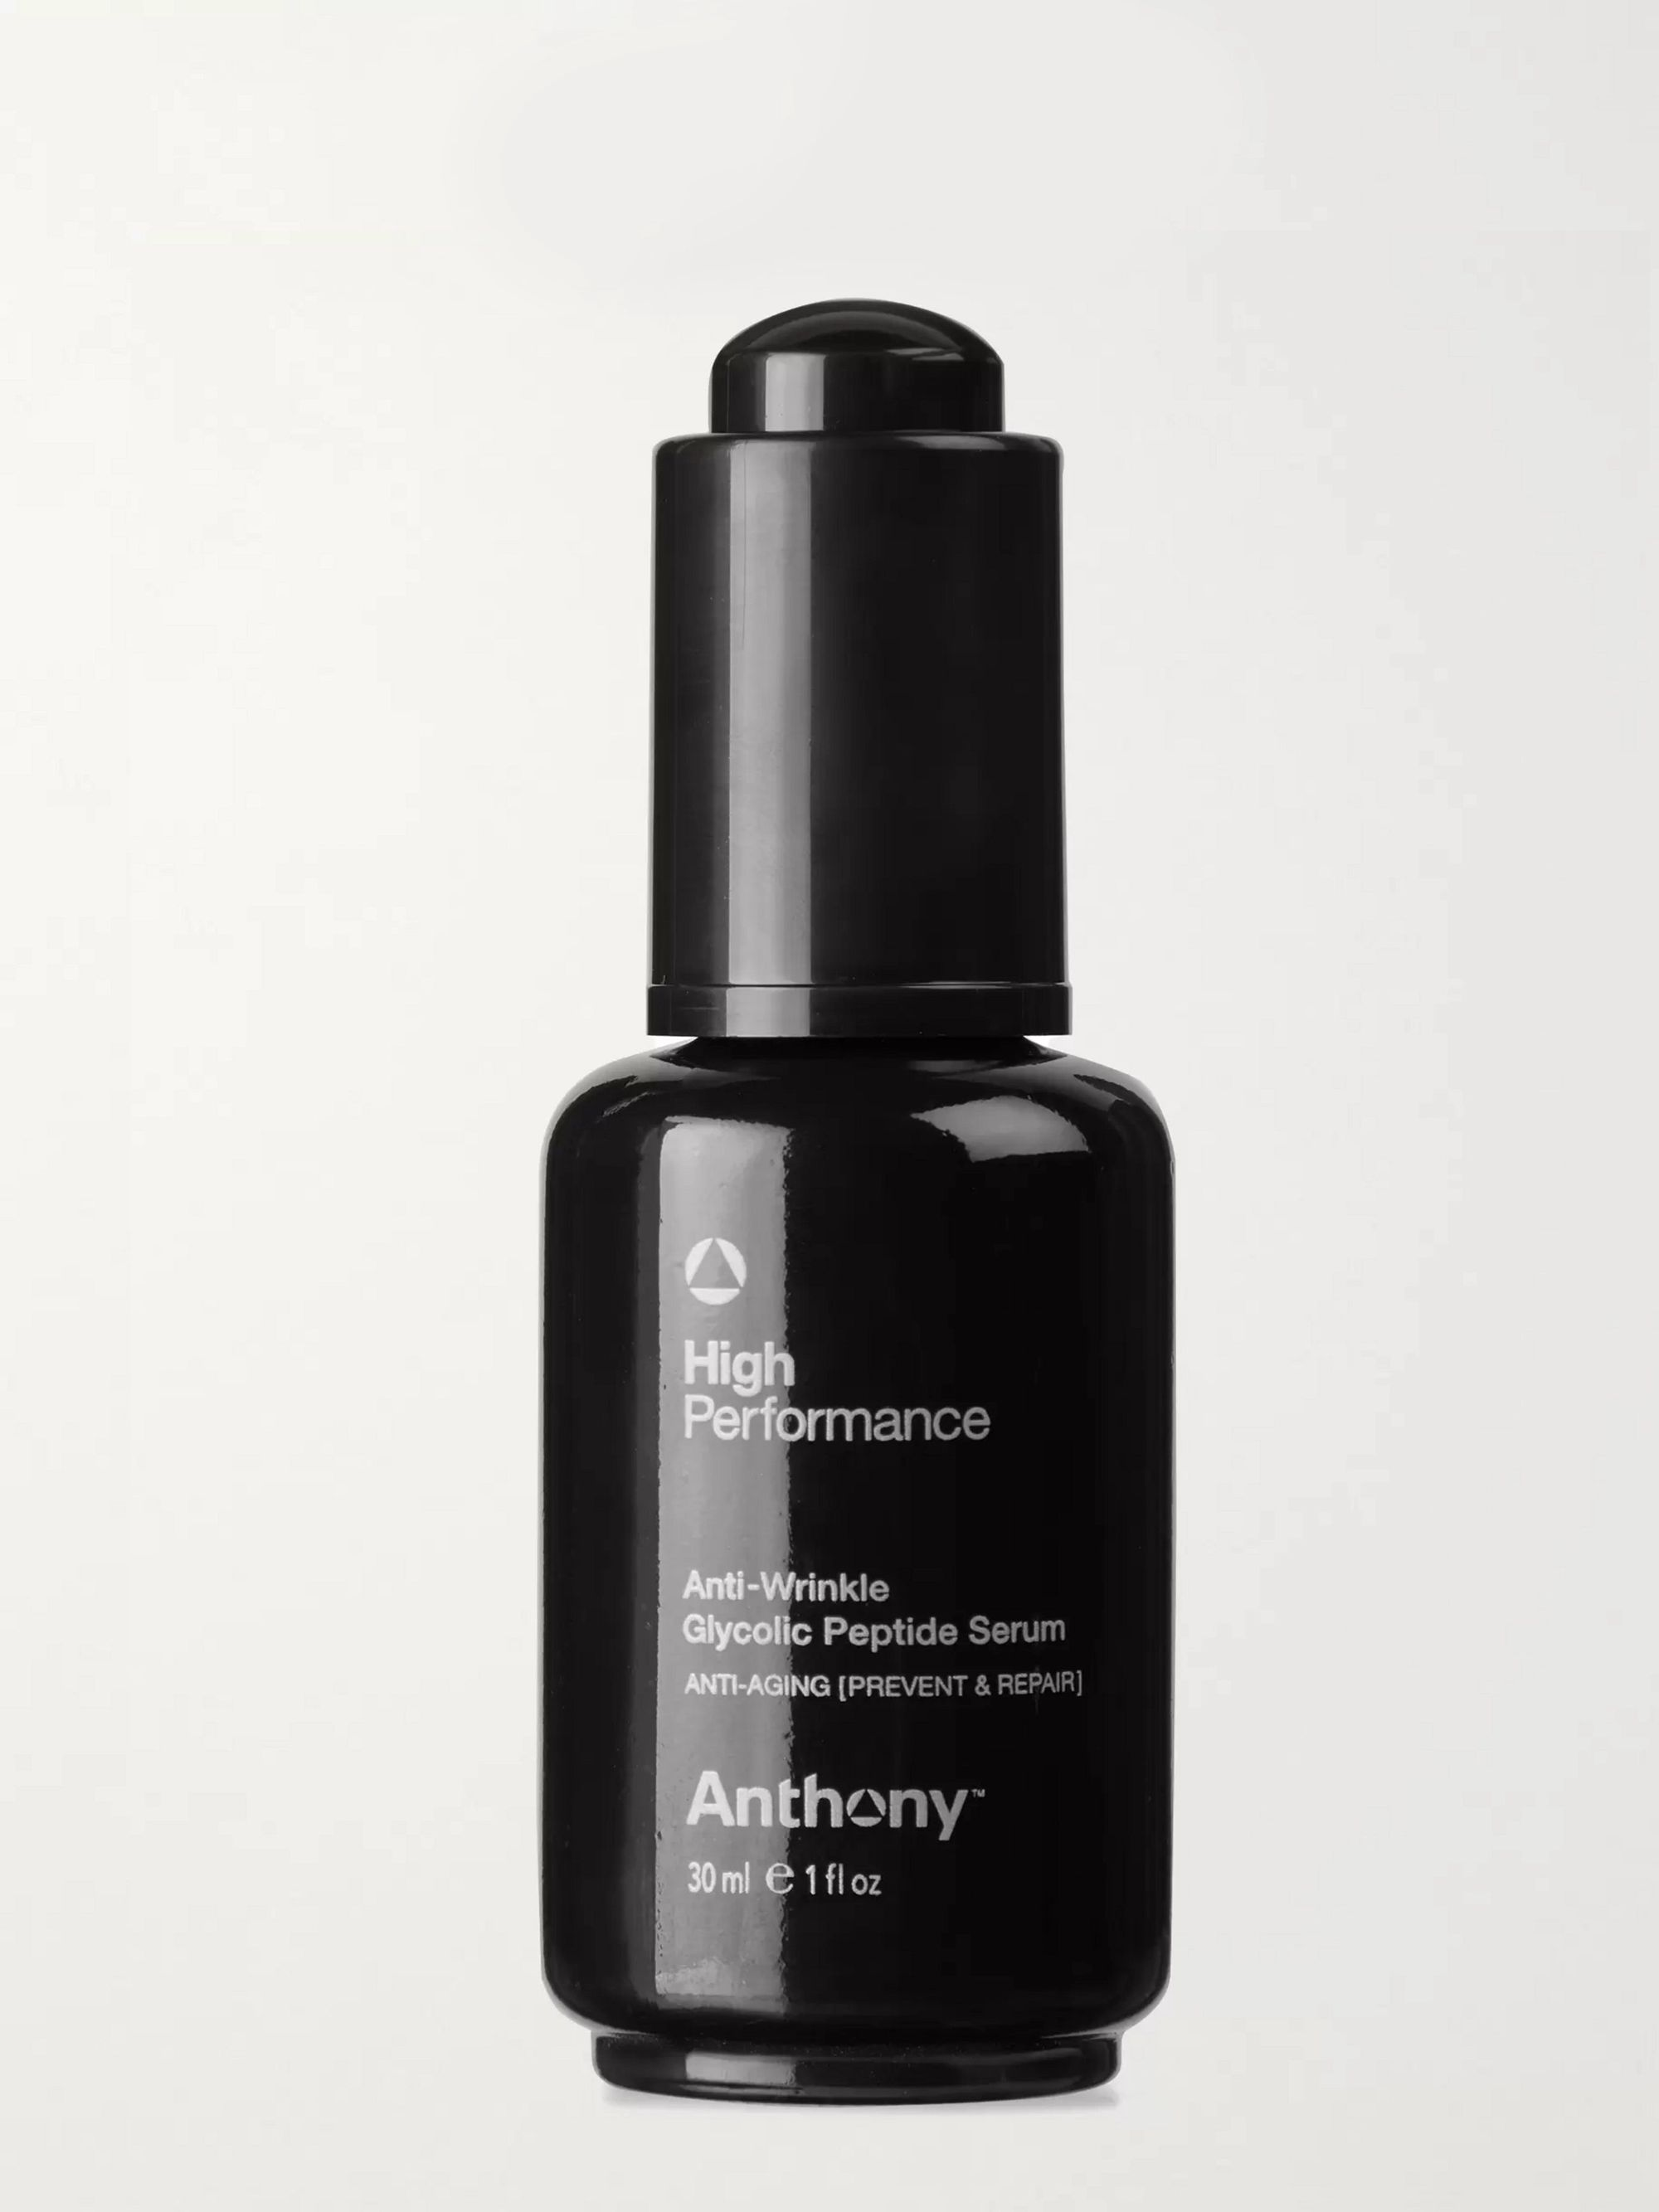 Anthony High Performance Anti-Wrinkle Glycolic Peptide Serum, 30ml